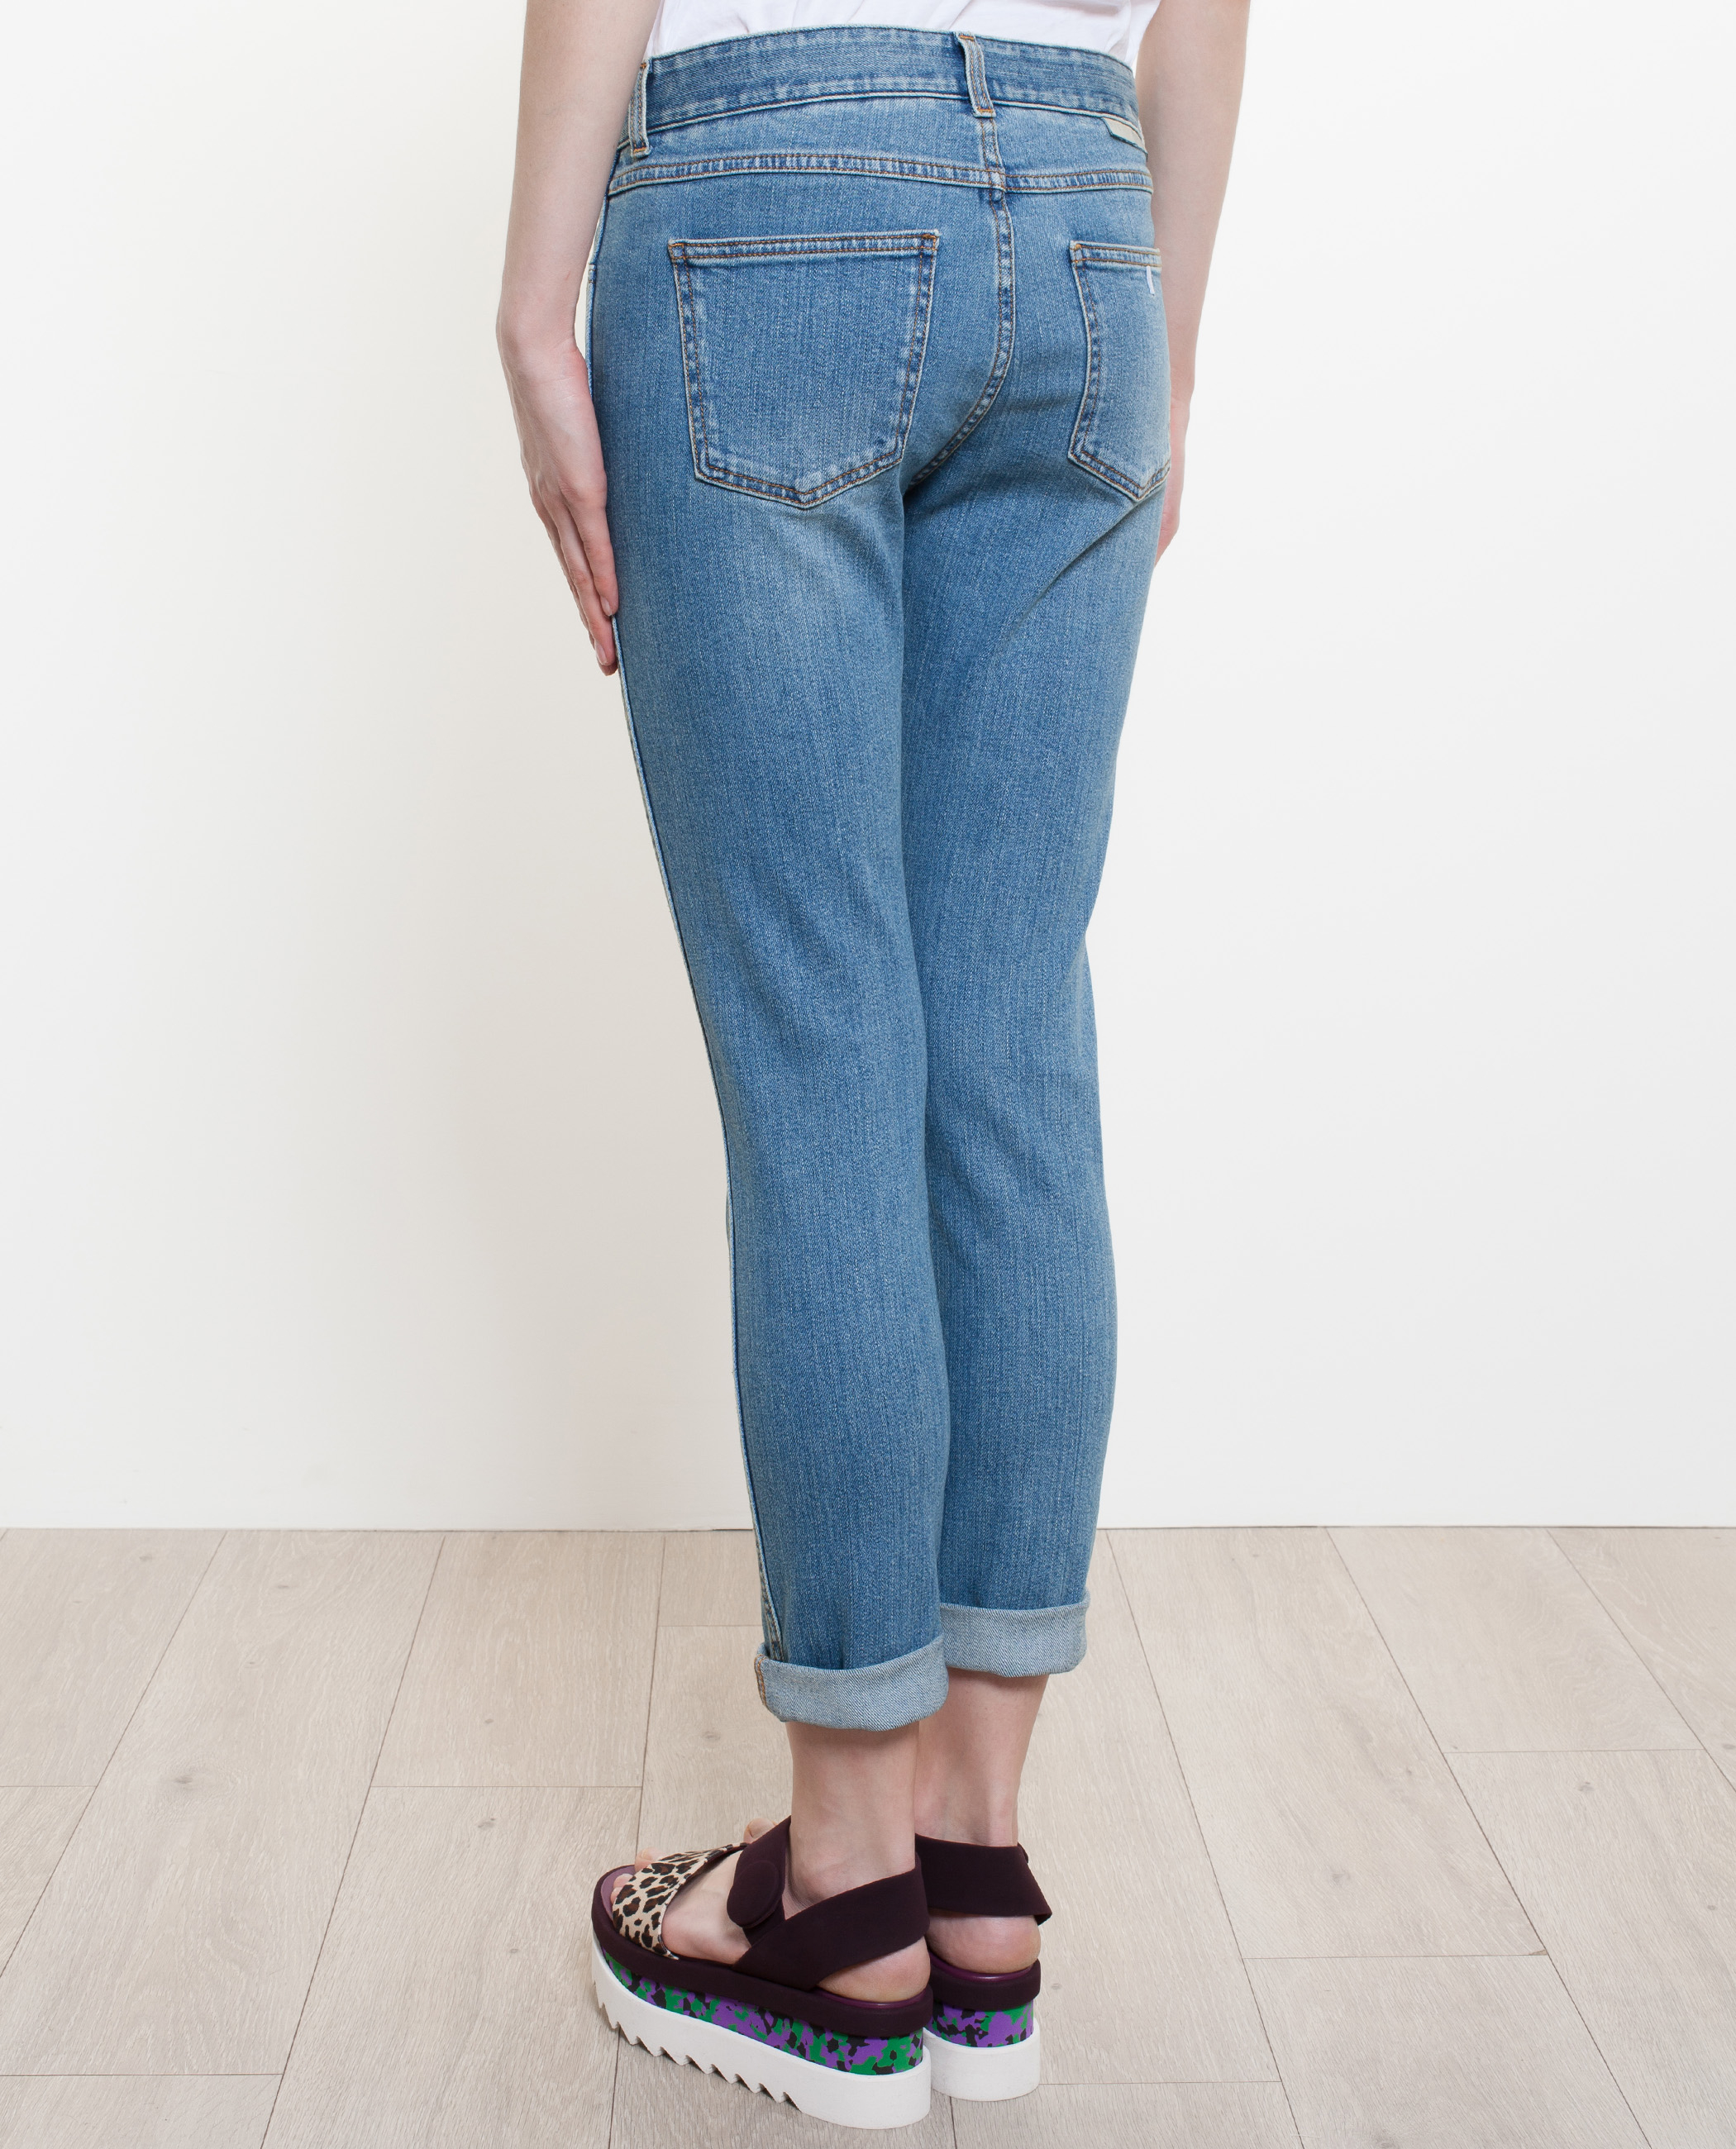 Stella mccartney Skinny Boyfriend Jeans in Blue | Lyst